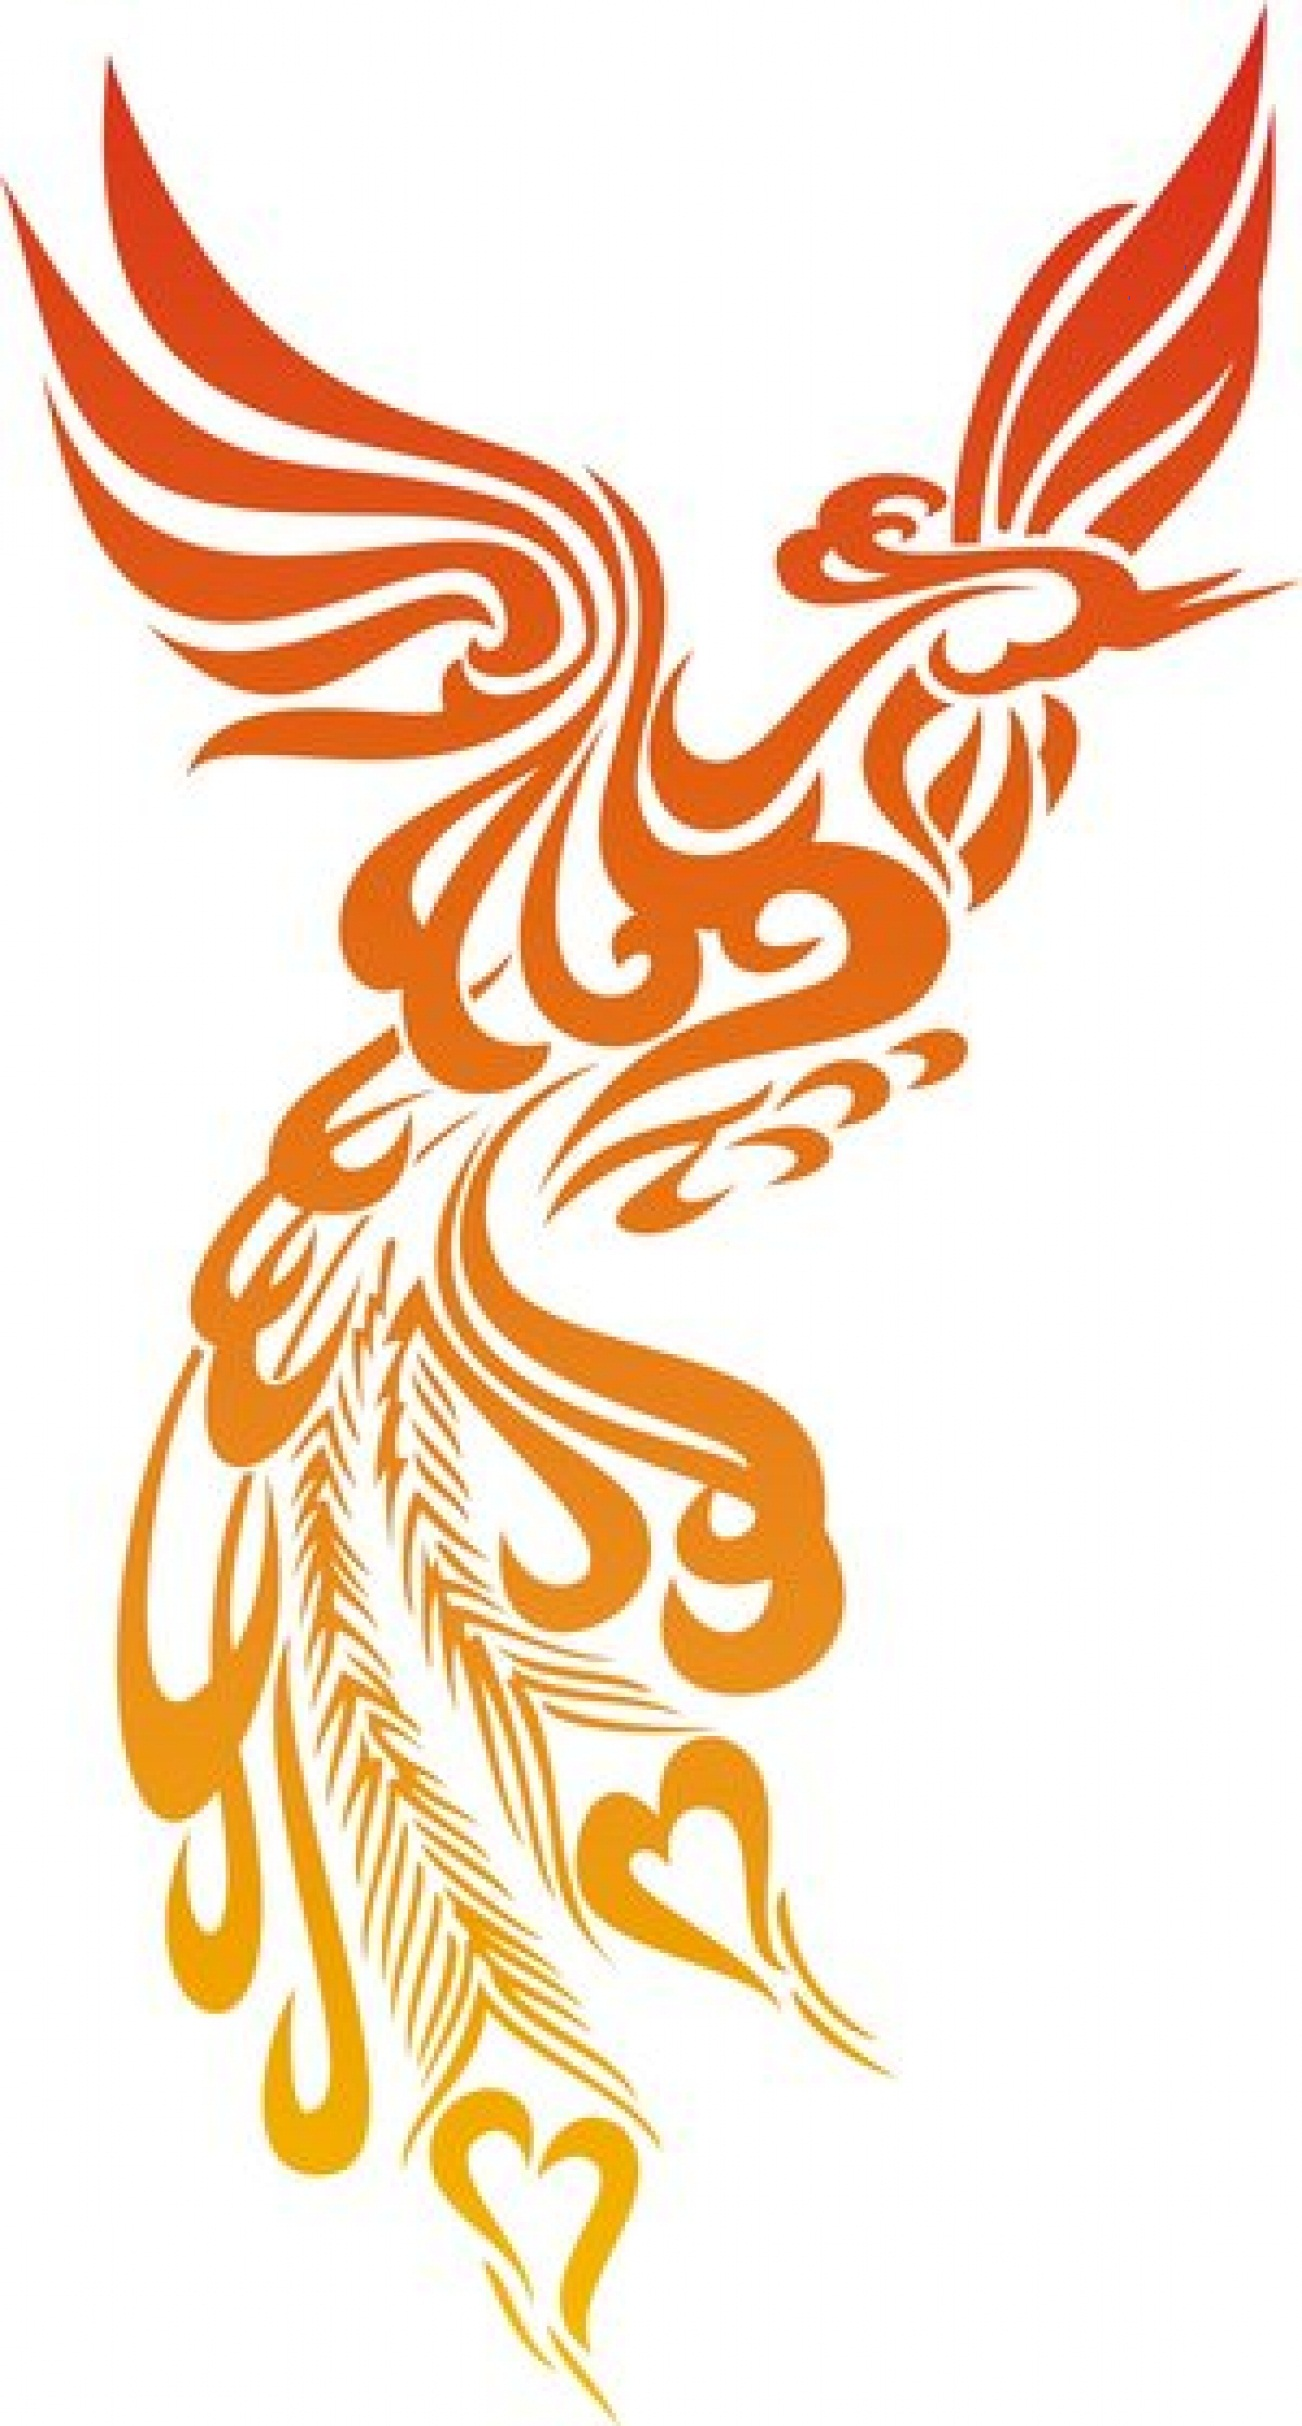 Phoenix clipart #15, Download drawings